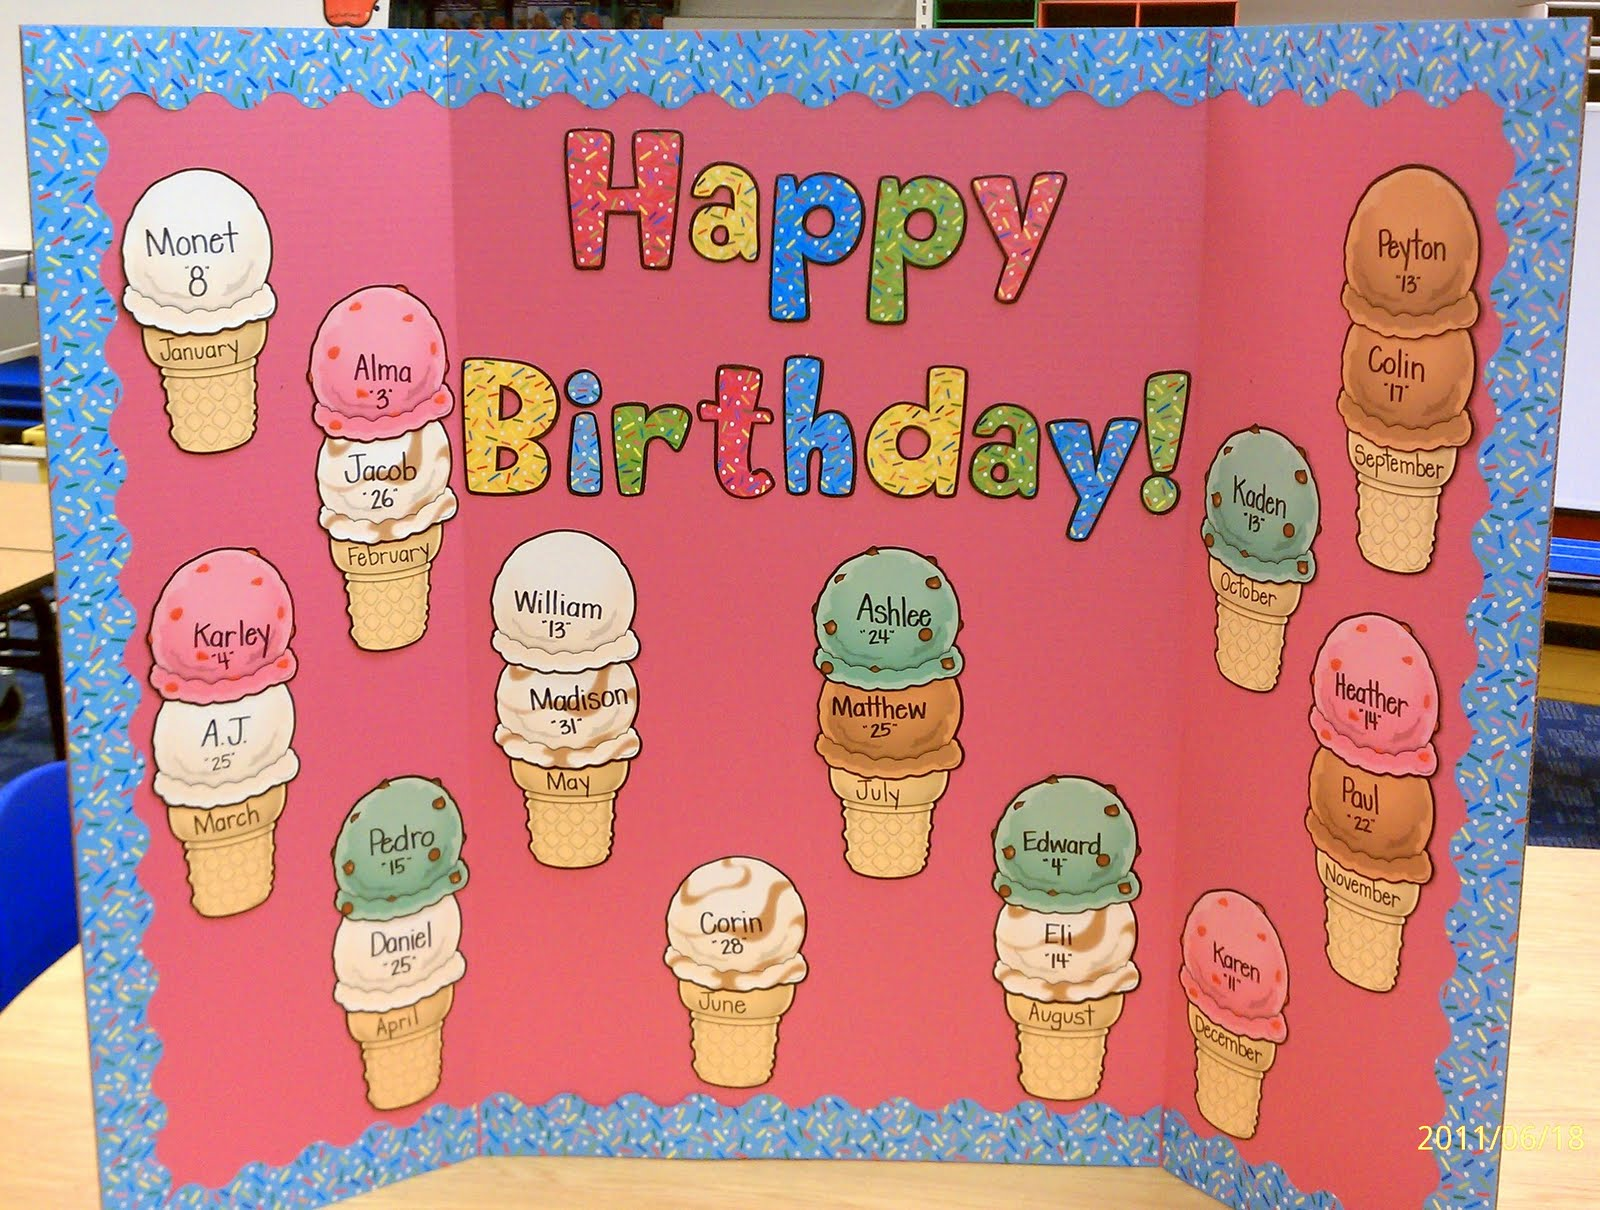 Invaluable image intended for birthday bulletin board ideas printable